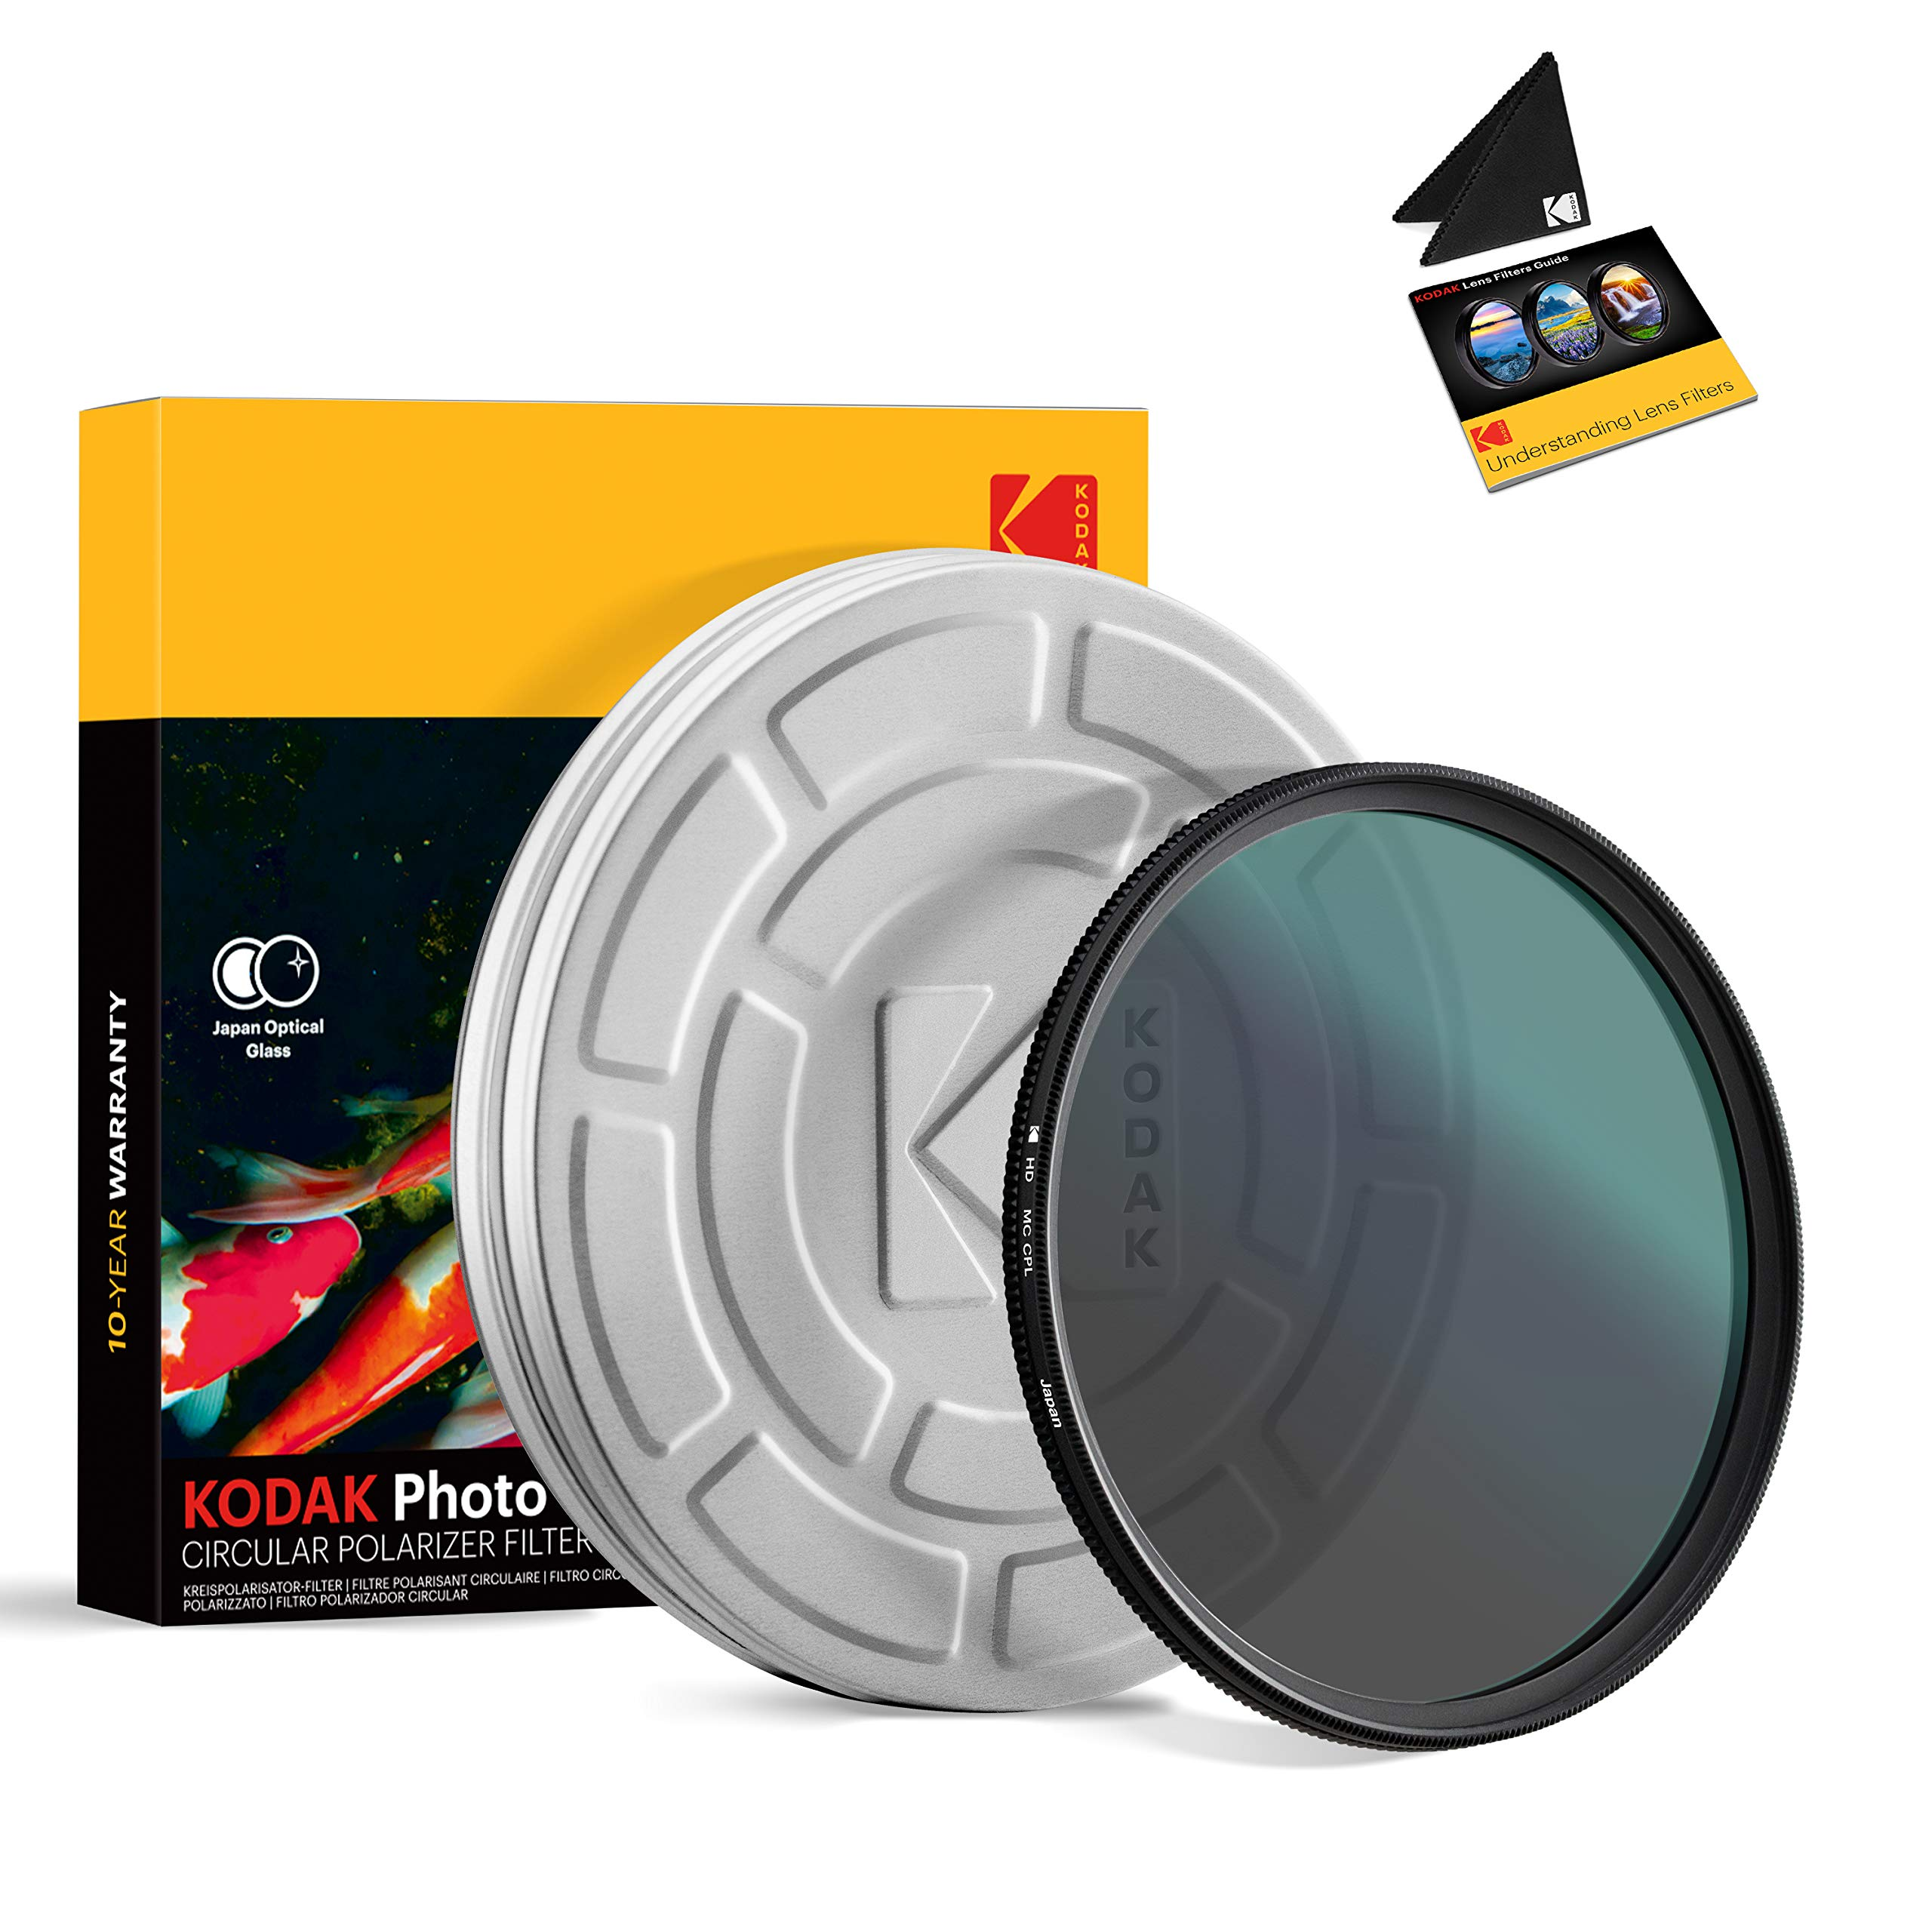 KODAK 72mm CPL Lens Filter   Circular Polarizing Filter Removes Reflections from Glass & Water, Enhances Contrast Improves Color Saturation, Super Slim, Multi-Coated 12-Layer Nano Glass & Mini Guide